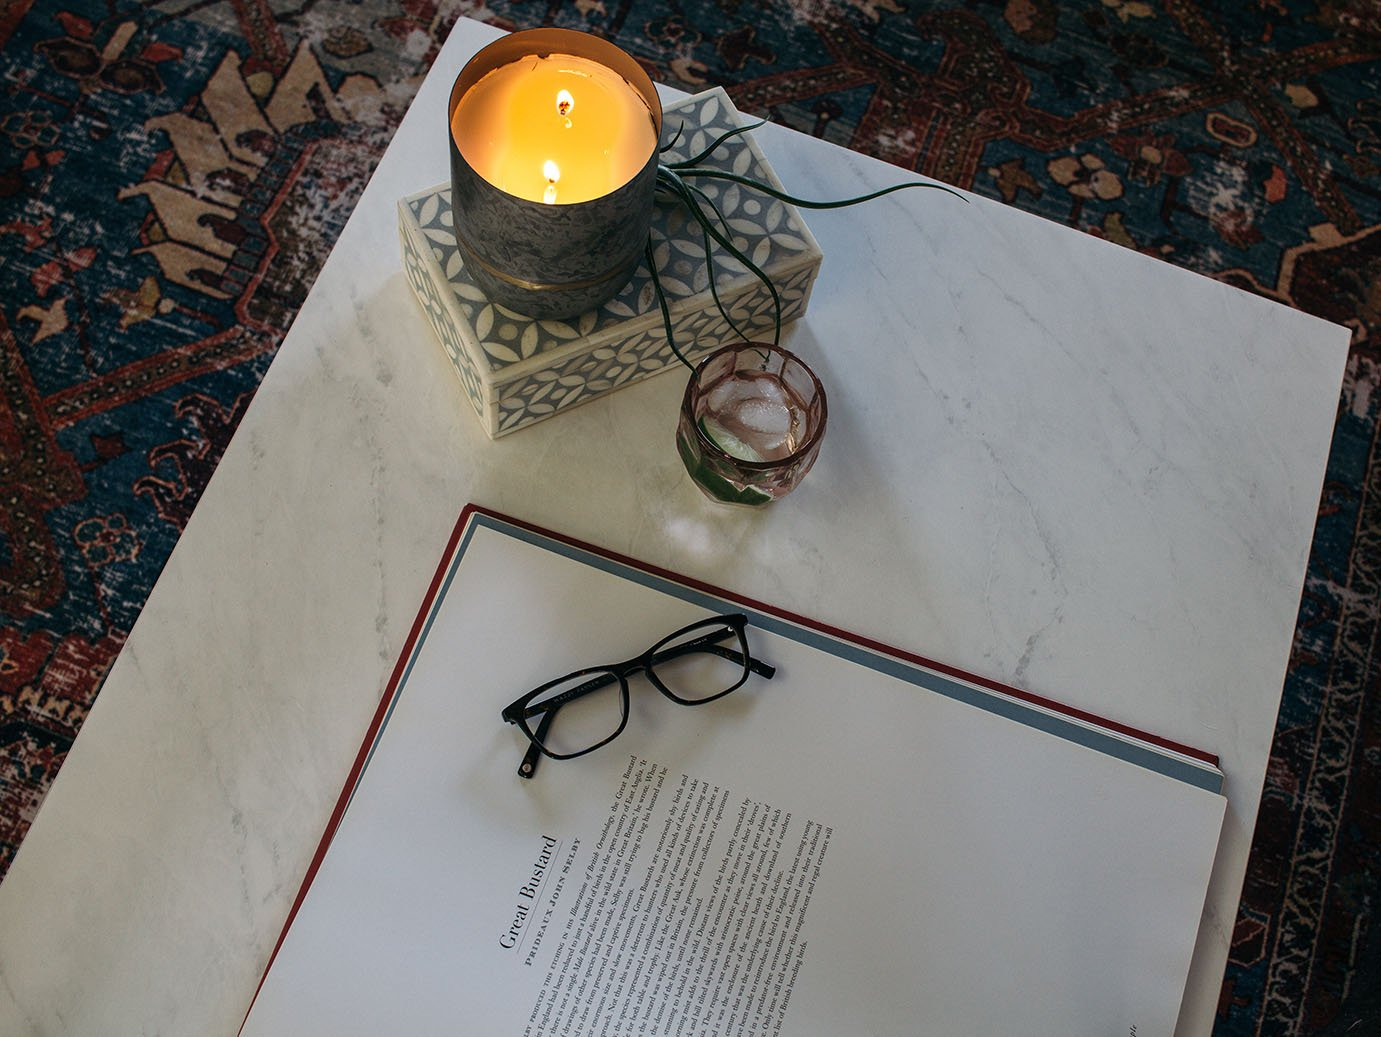 Marble coffee table on topof a vintage rug with a candle, book, and glasses.